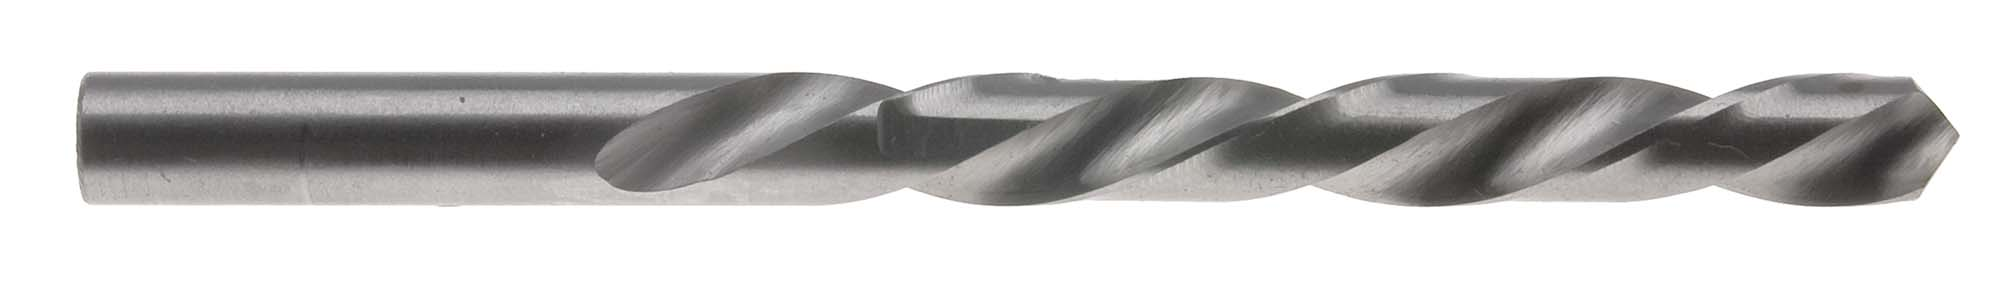 "#22 (.1570"") Left Hand Jobber Drill Bit, High Speed Steel"